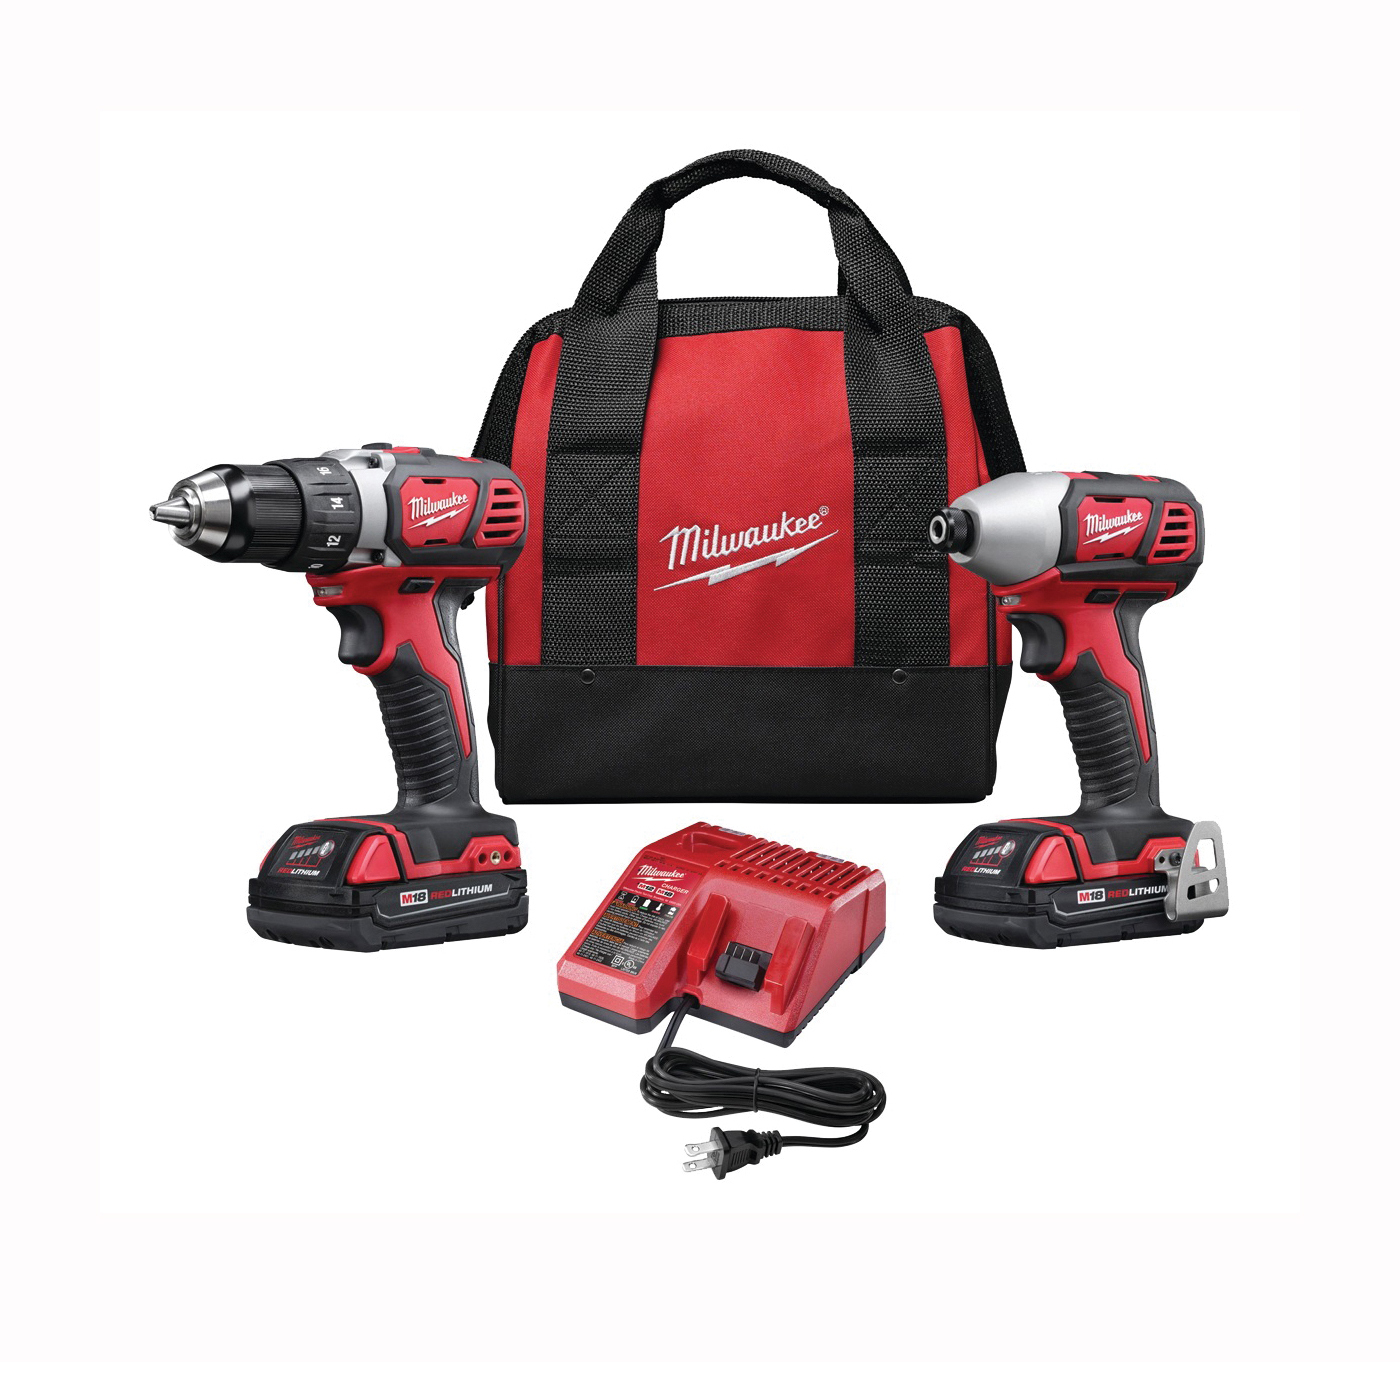 Picture of Milwaukee 2691-22 Two-Tool Combo Kit, Battery Included: Yes